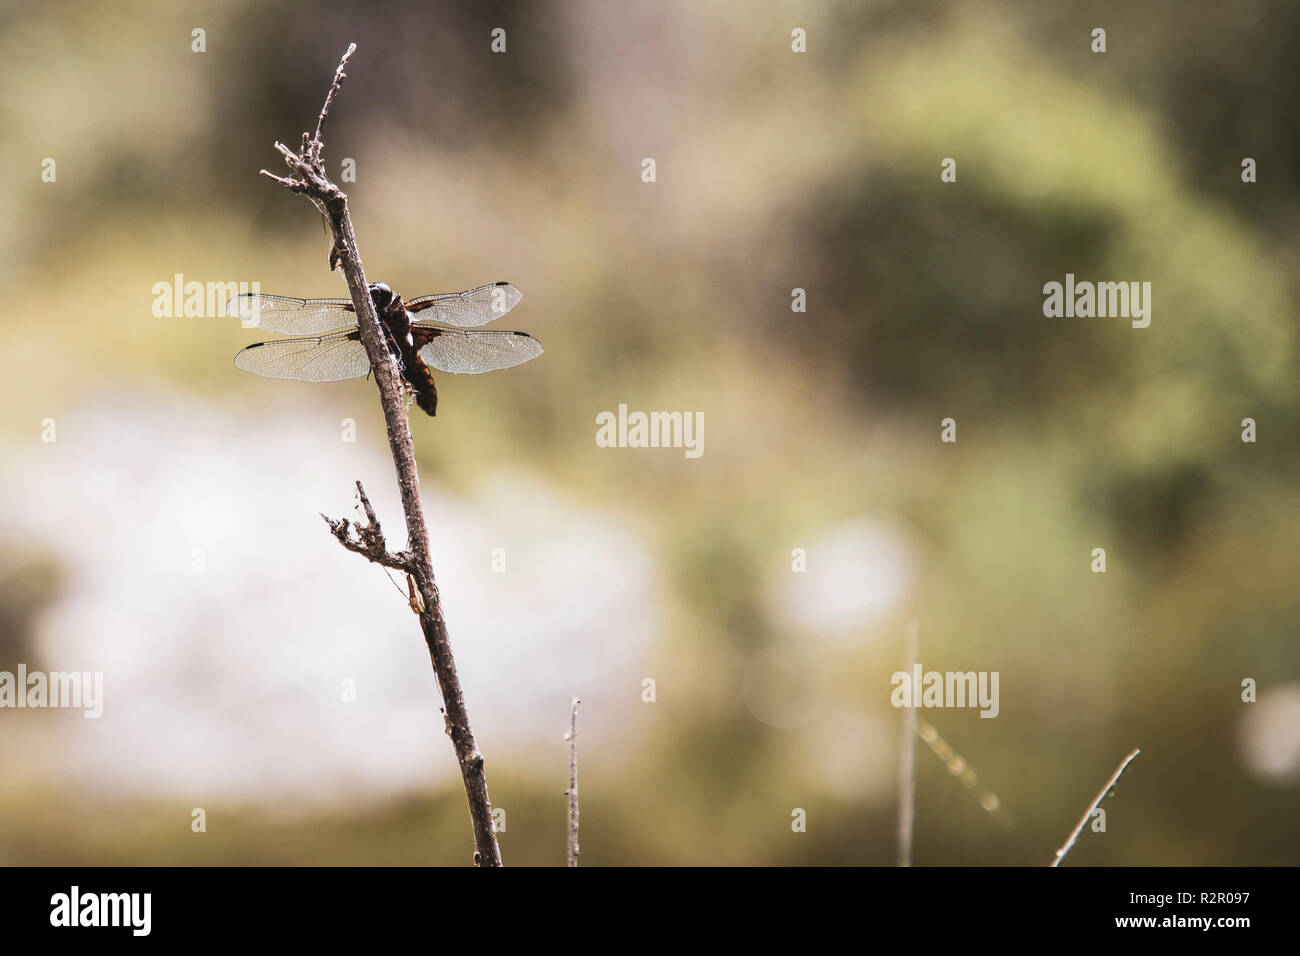 Wetland in the mountains of Sardinia, dragonfly on a twig - Stock Image